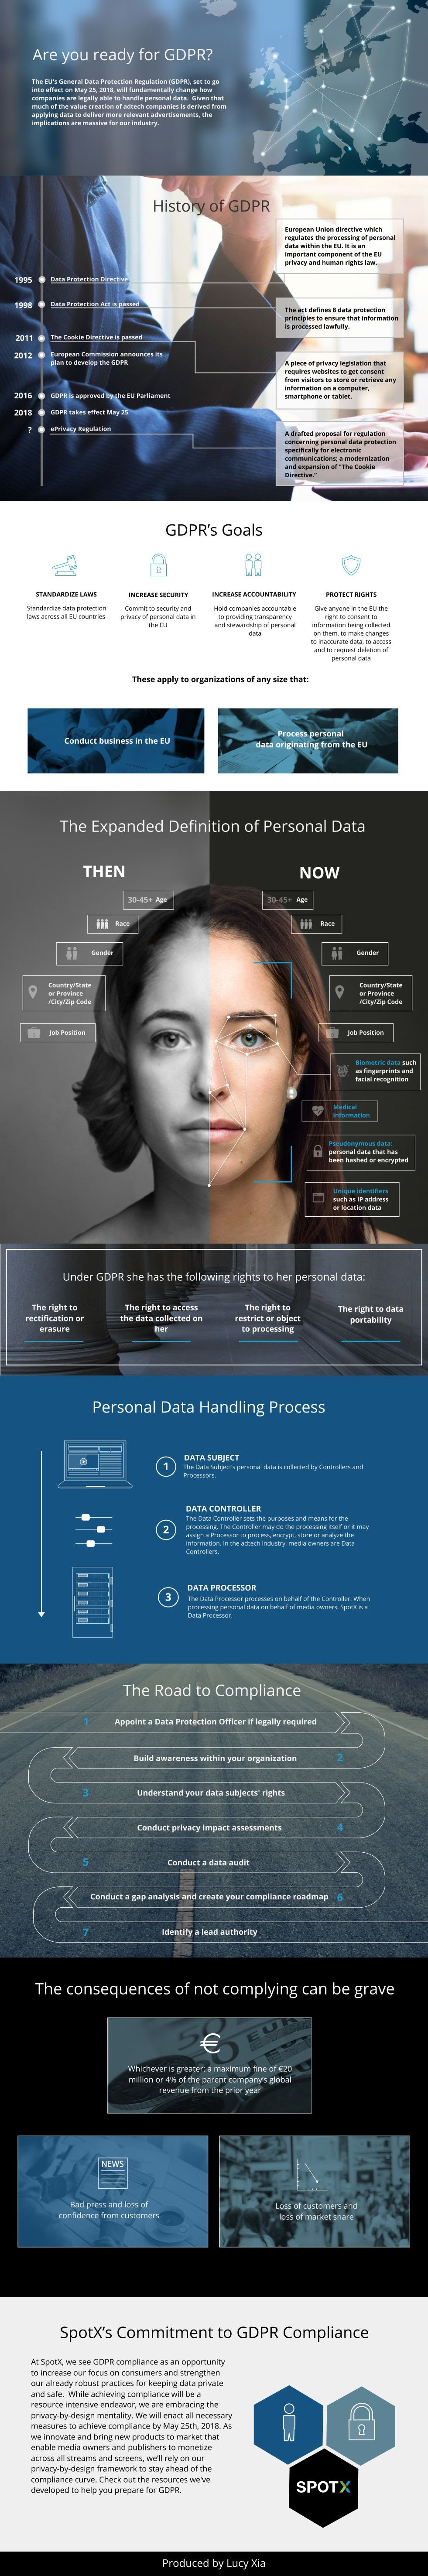 Are You Ready for GDPR? [Infographic]